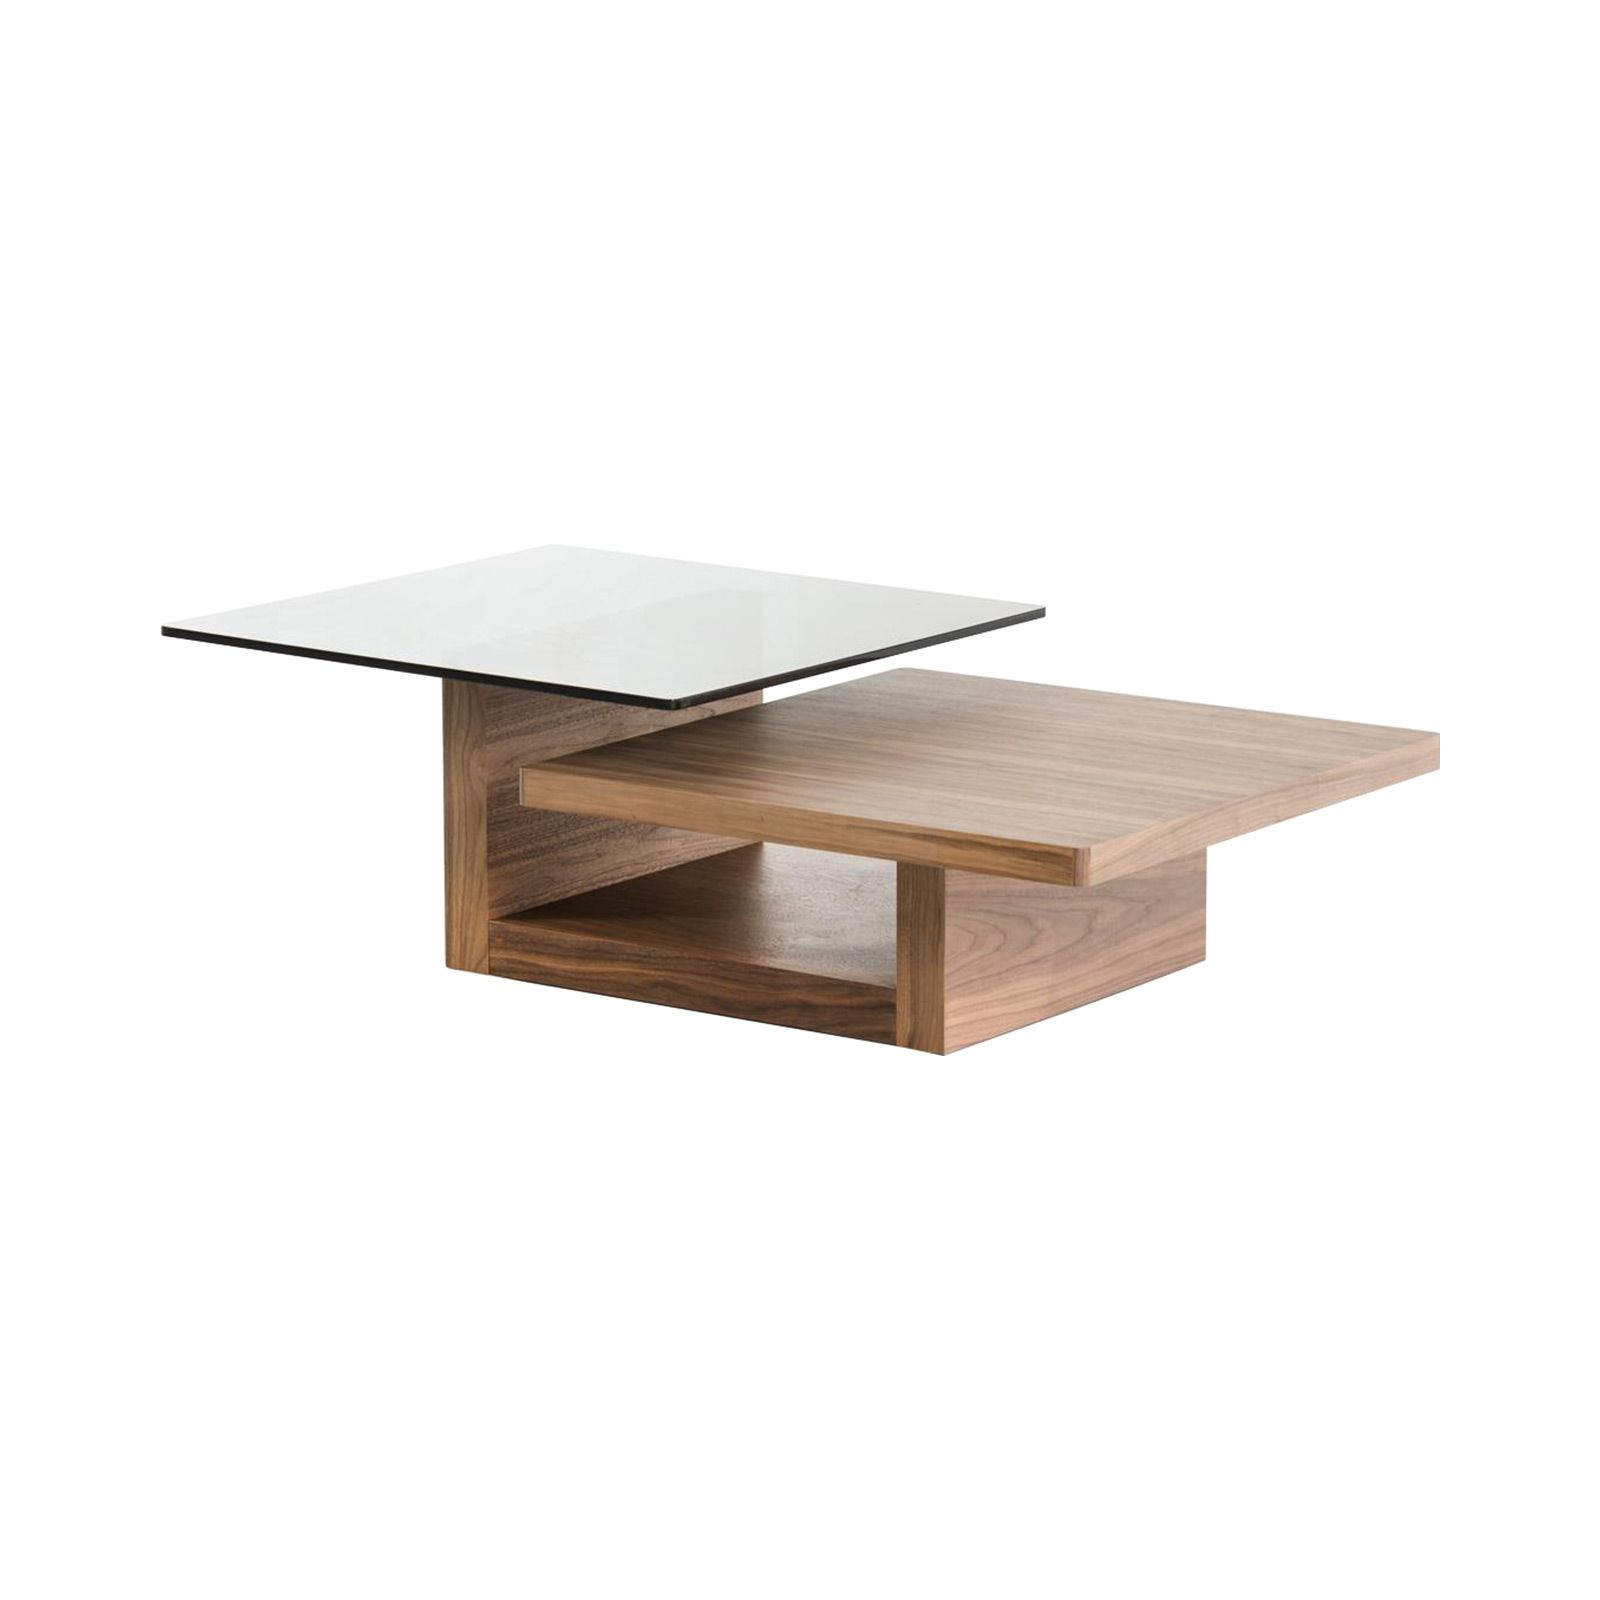 Dot Bo Furniture And Decor For The Modern Lifestyle Coffee Table Coffee Table Rectangle Antique Coffee Tables [ 1600 x 1600 Pixel ]